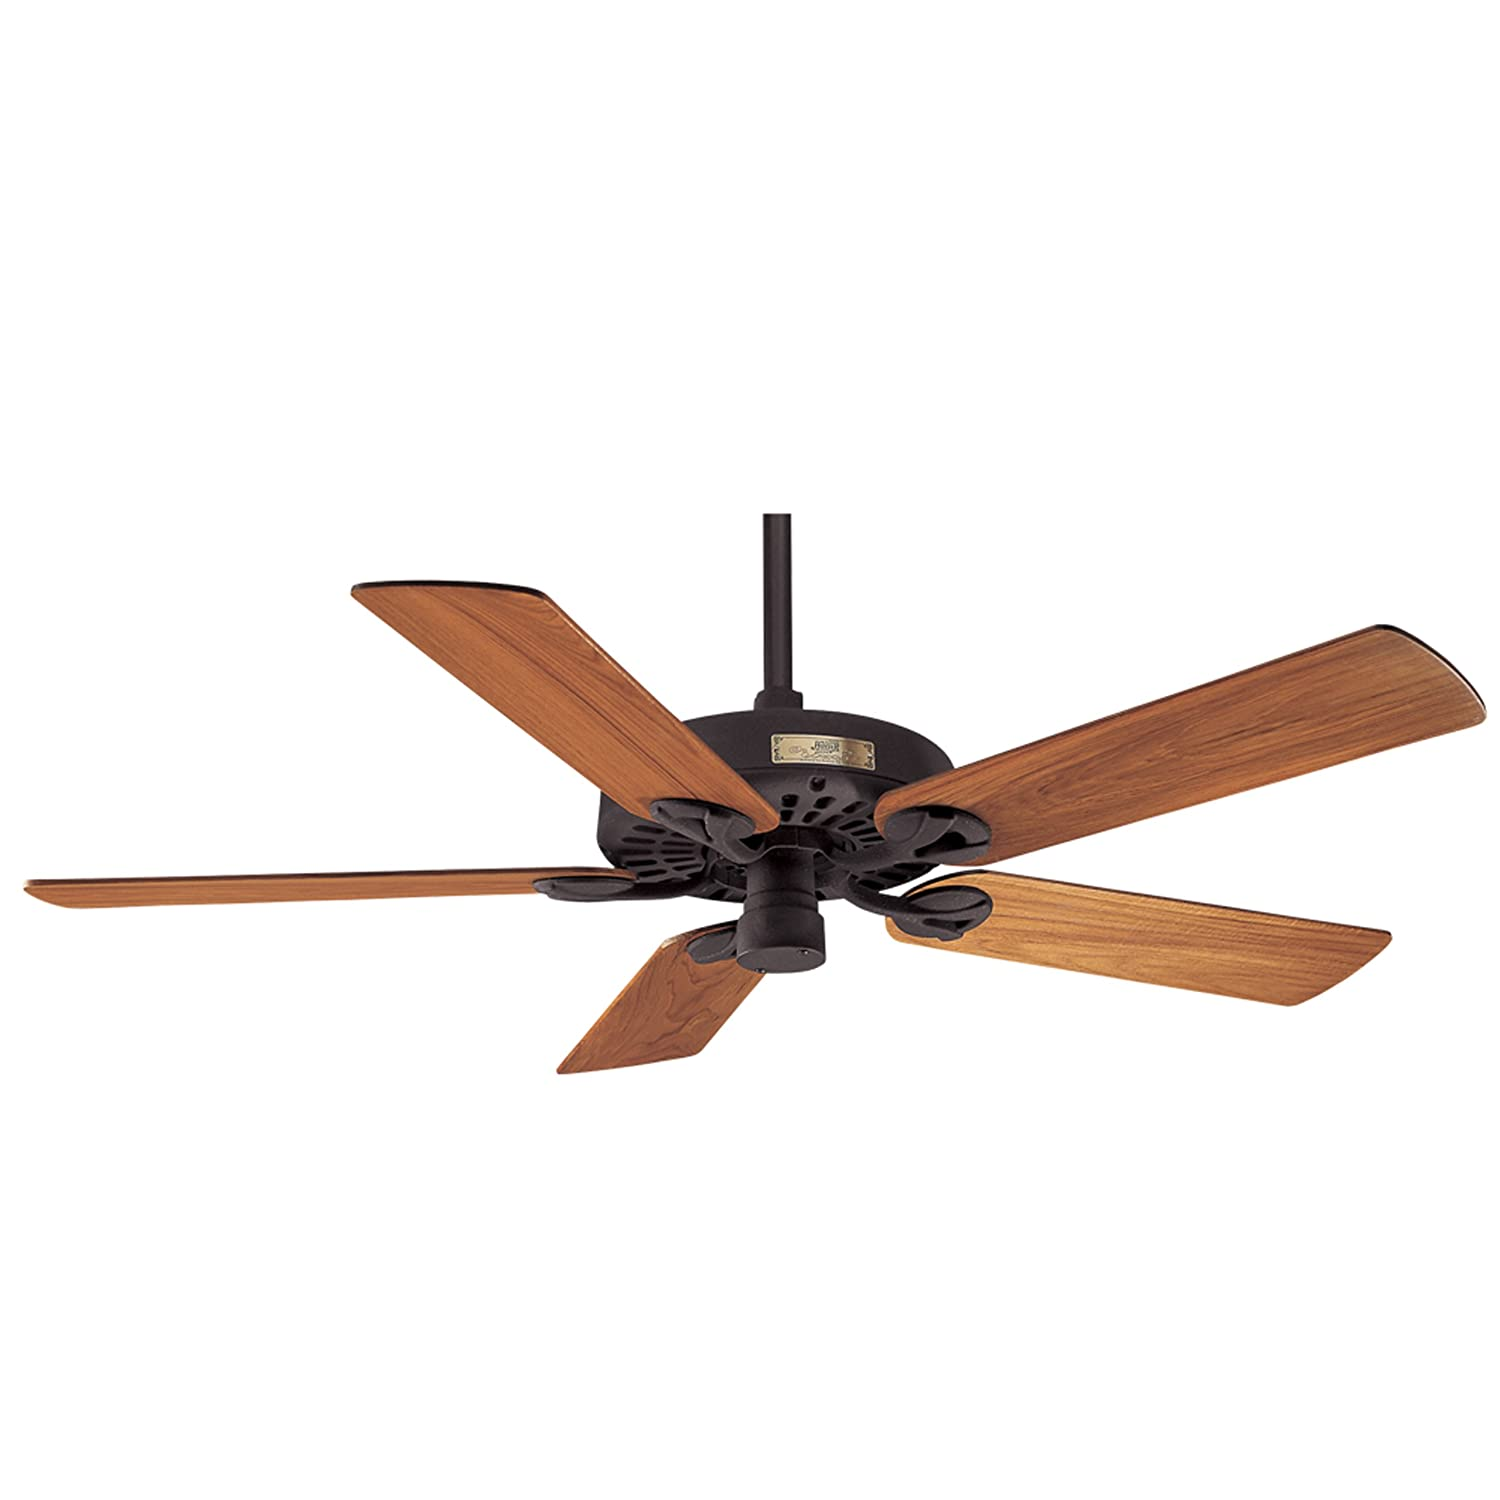 light pd harbor with outdoor kit in best bronze echolake fans indoor oil breeze shop fan ceiling rubbed